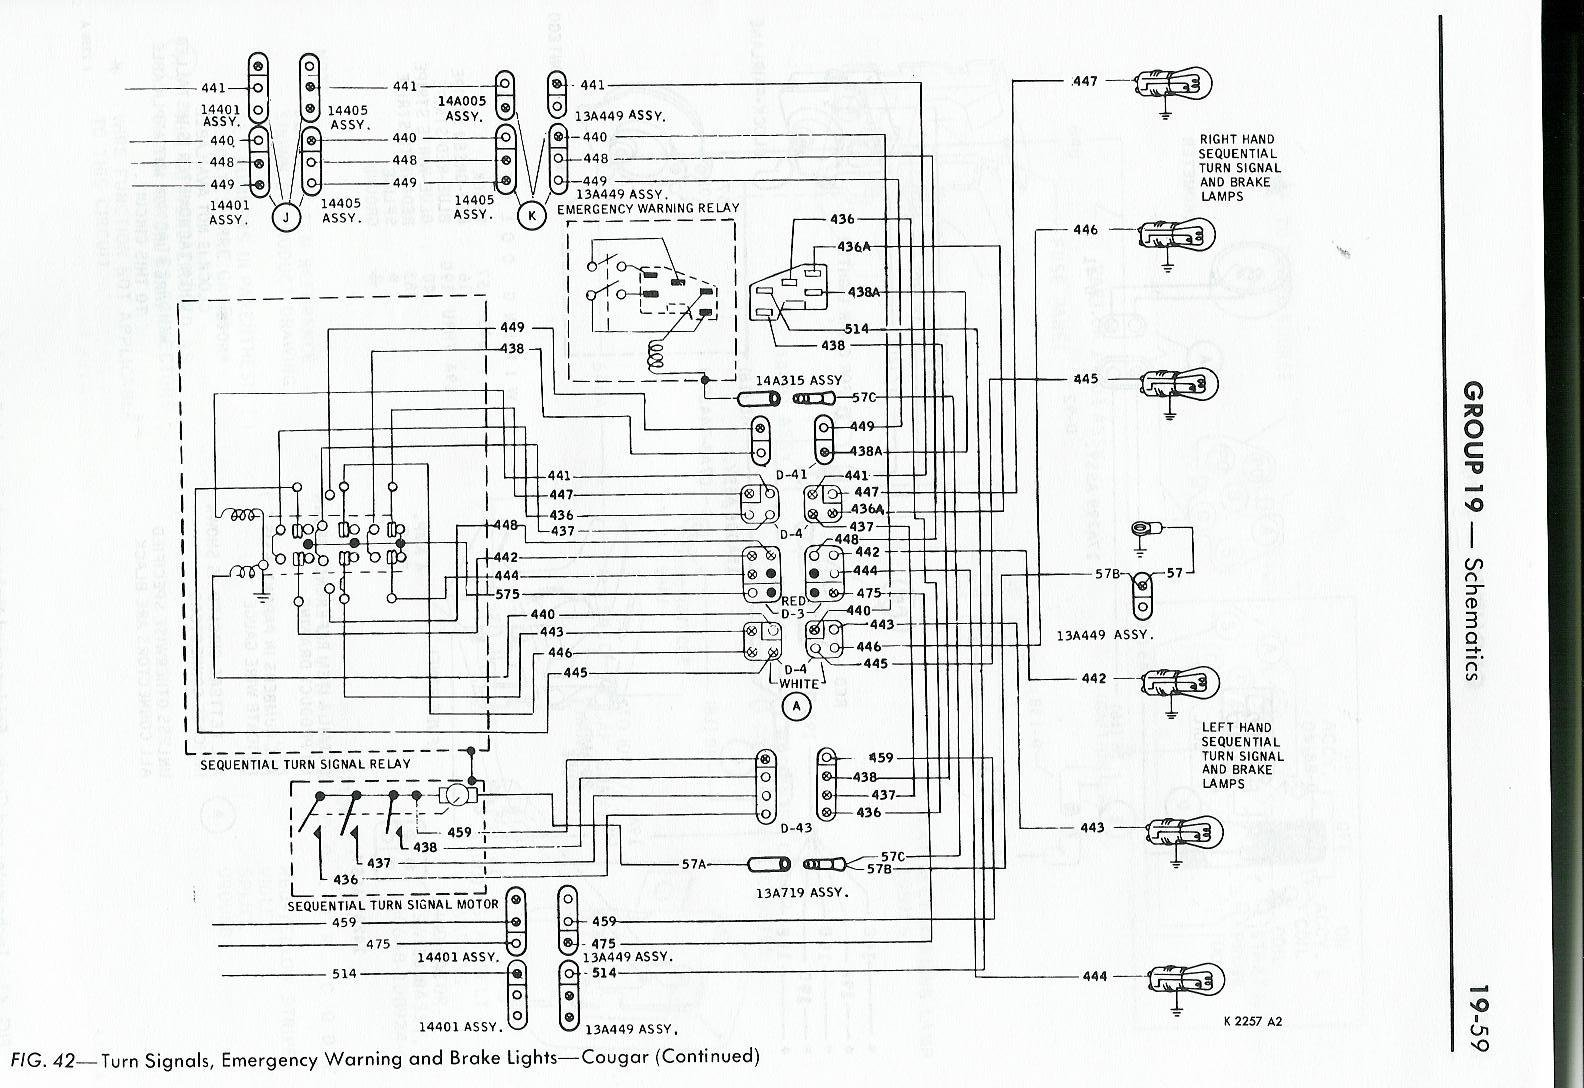 68 Cougar Fuse Box Diagram Wiring Schematics 2000 Grand Marquis Schematic Ford